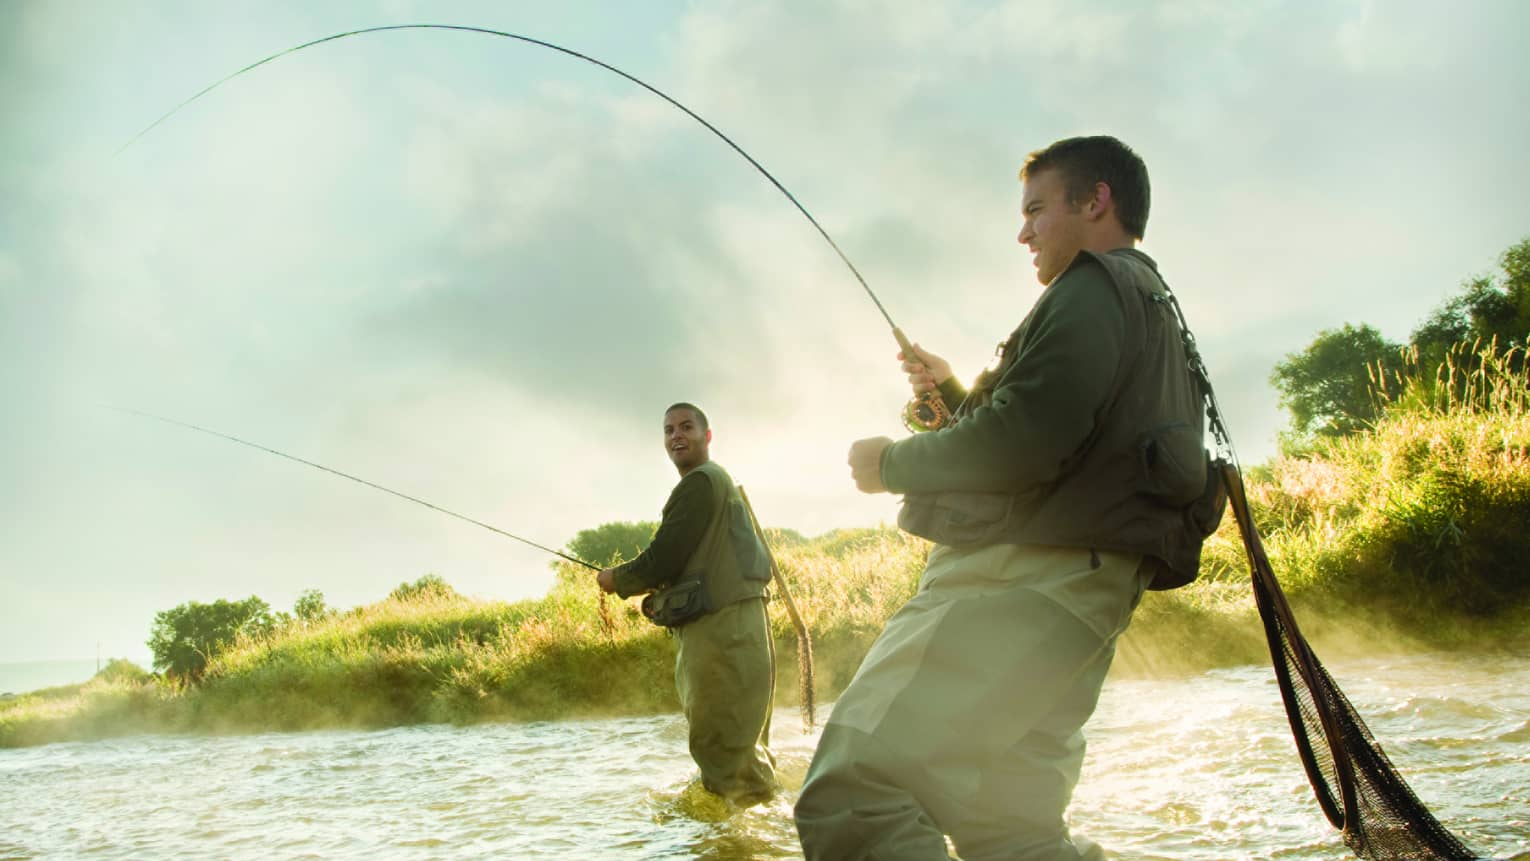 Two men standing in the water, holding rods fly fishing